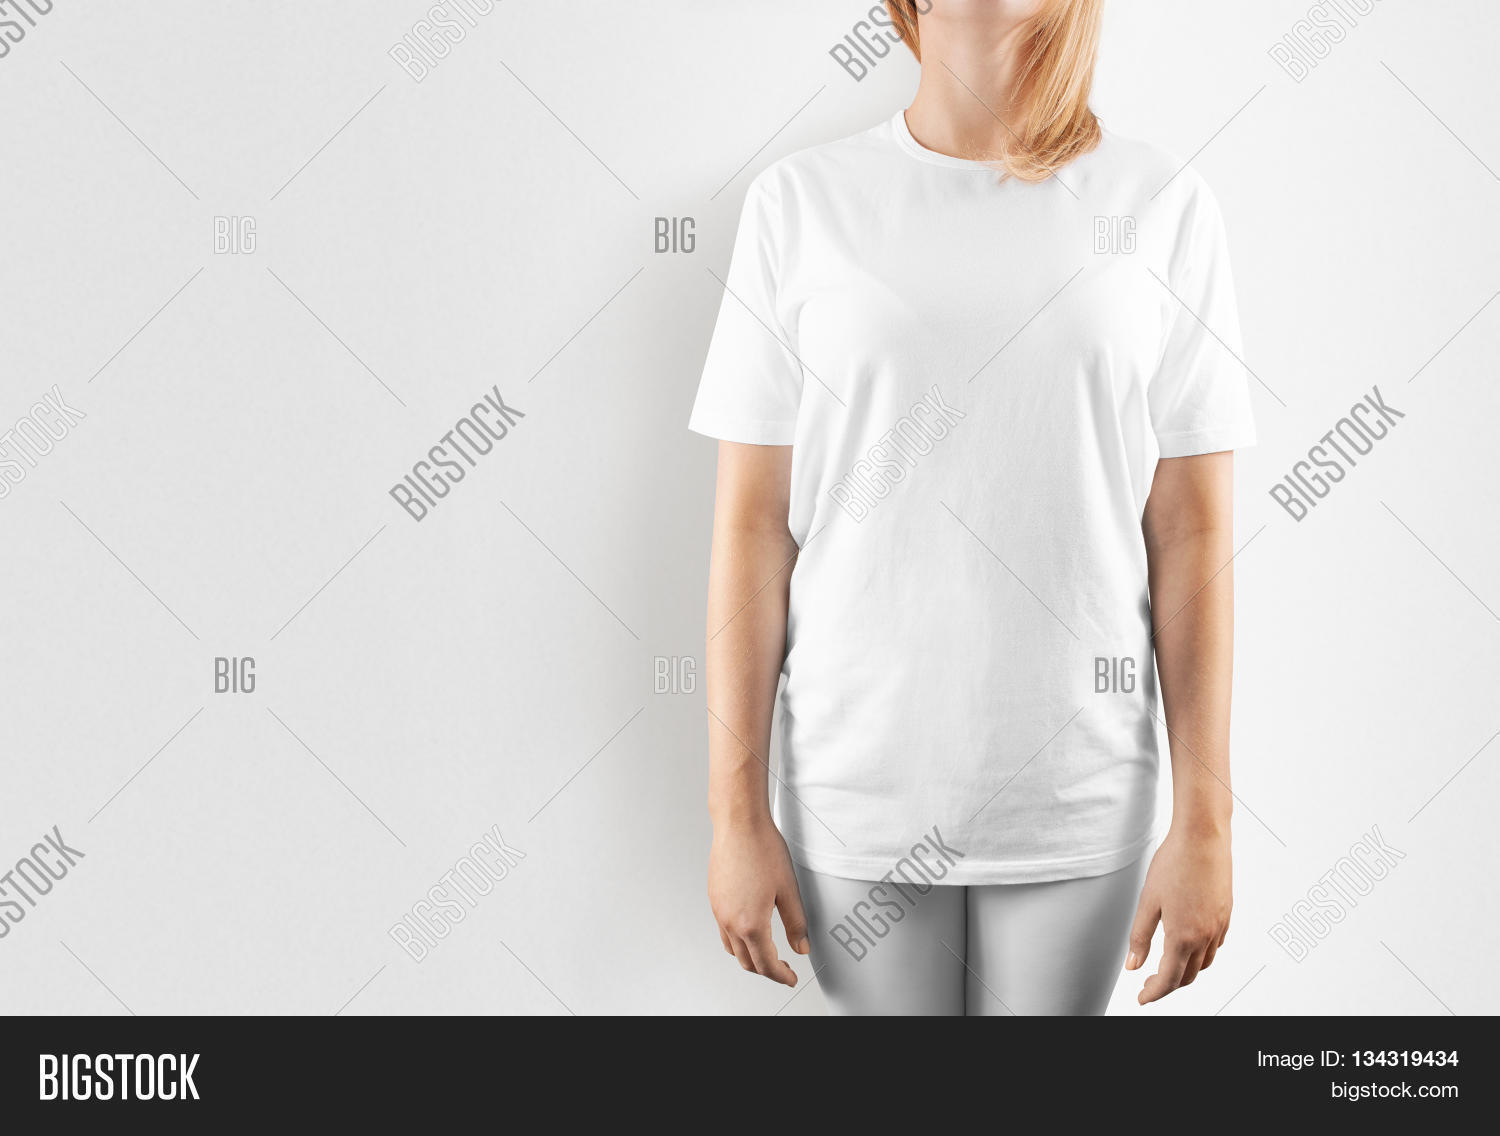 Blank White T-shirt Image & Photo (Free Trial) | Bigstock